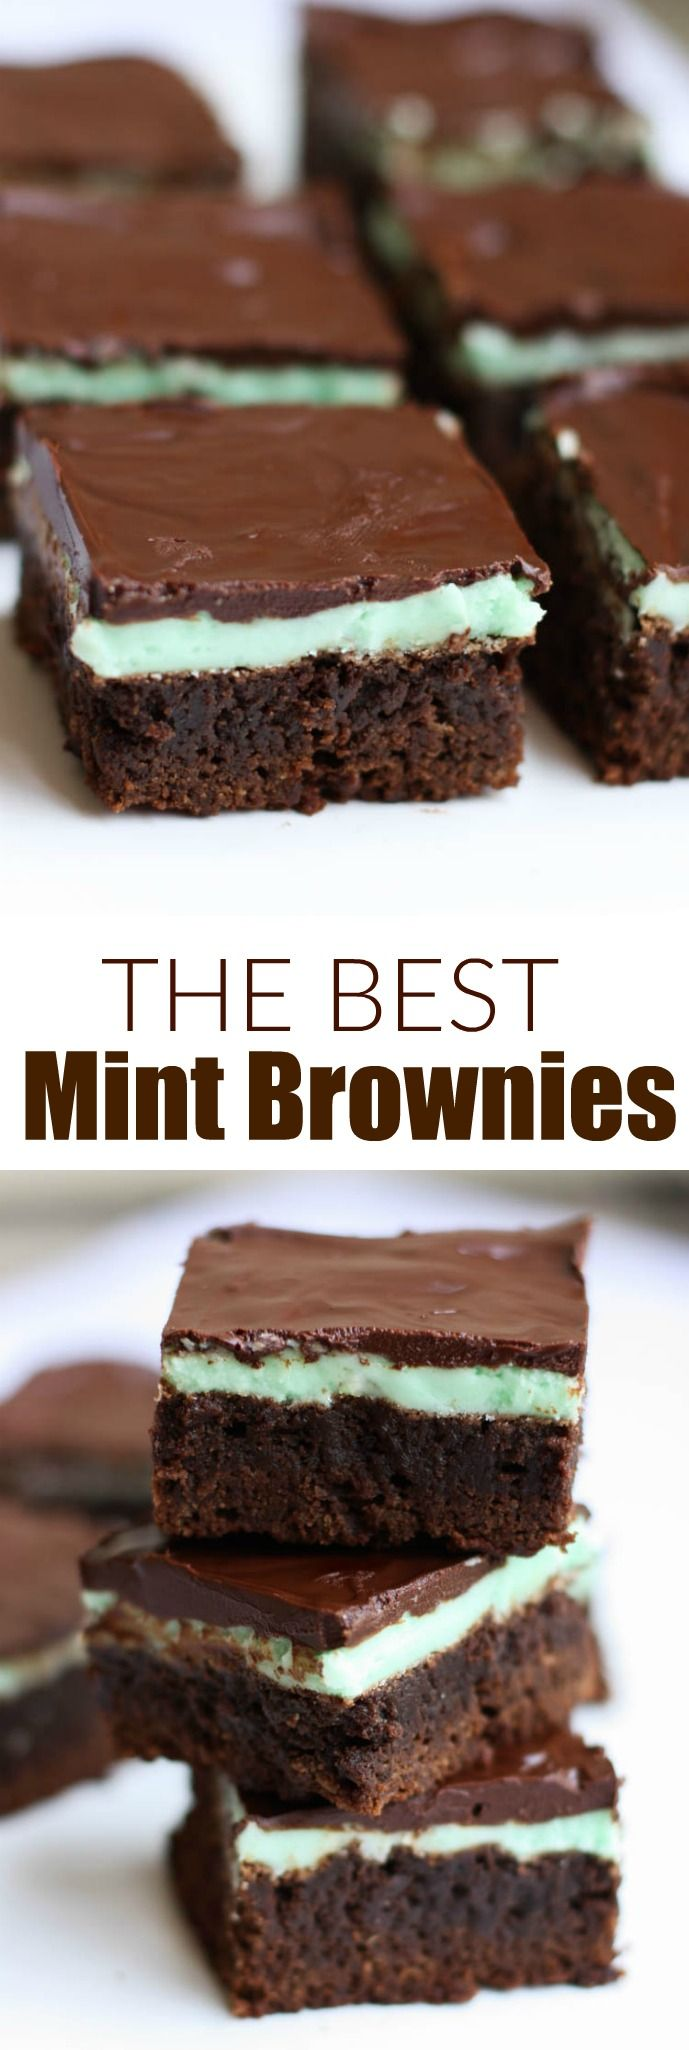 These soft, fudgy, homemade mint brownies are the perfect treat for parties and get togethers--Warning, they'll be gone in seconds!    tastesbetterfromscratch.com #brownies #chocolate #mintbrownies #dessert via @betrfromscratch